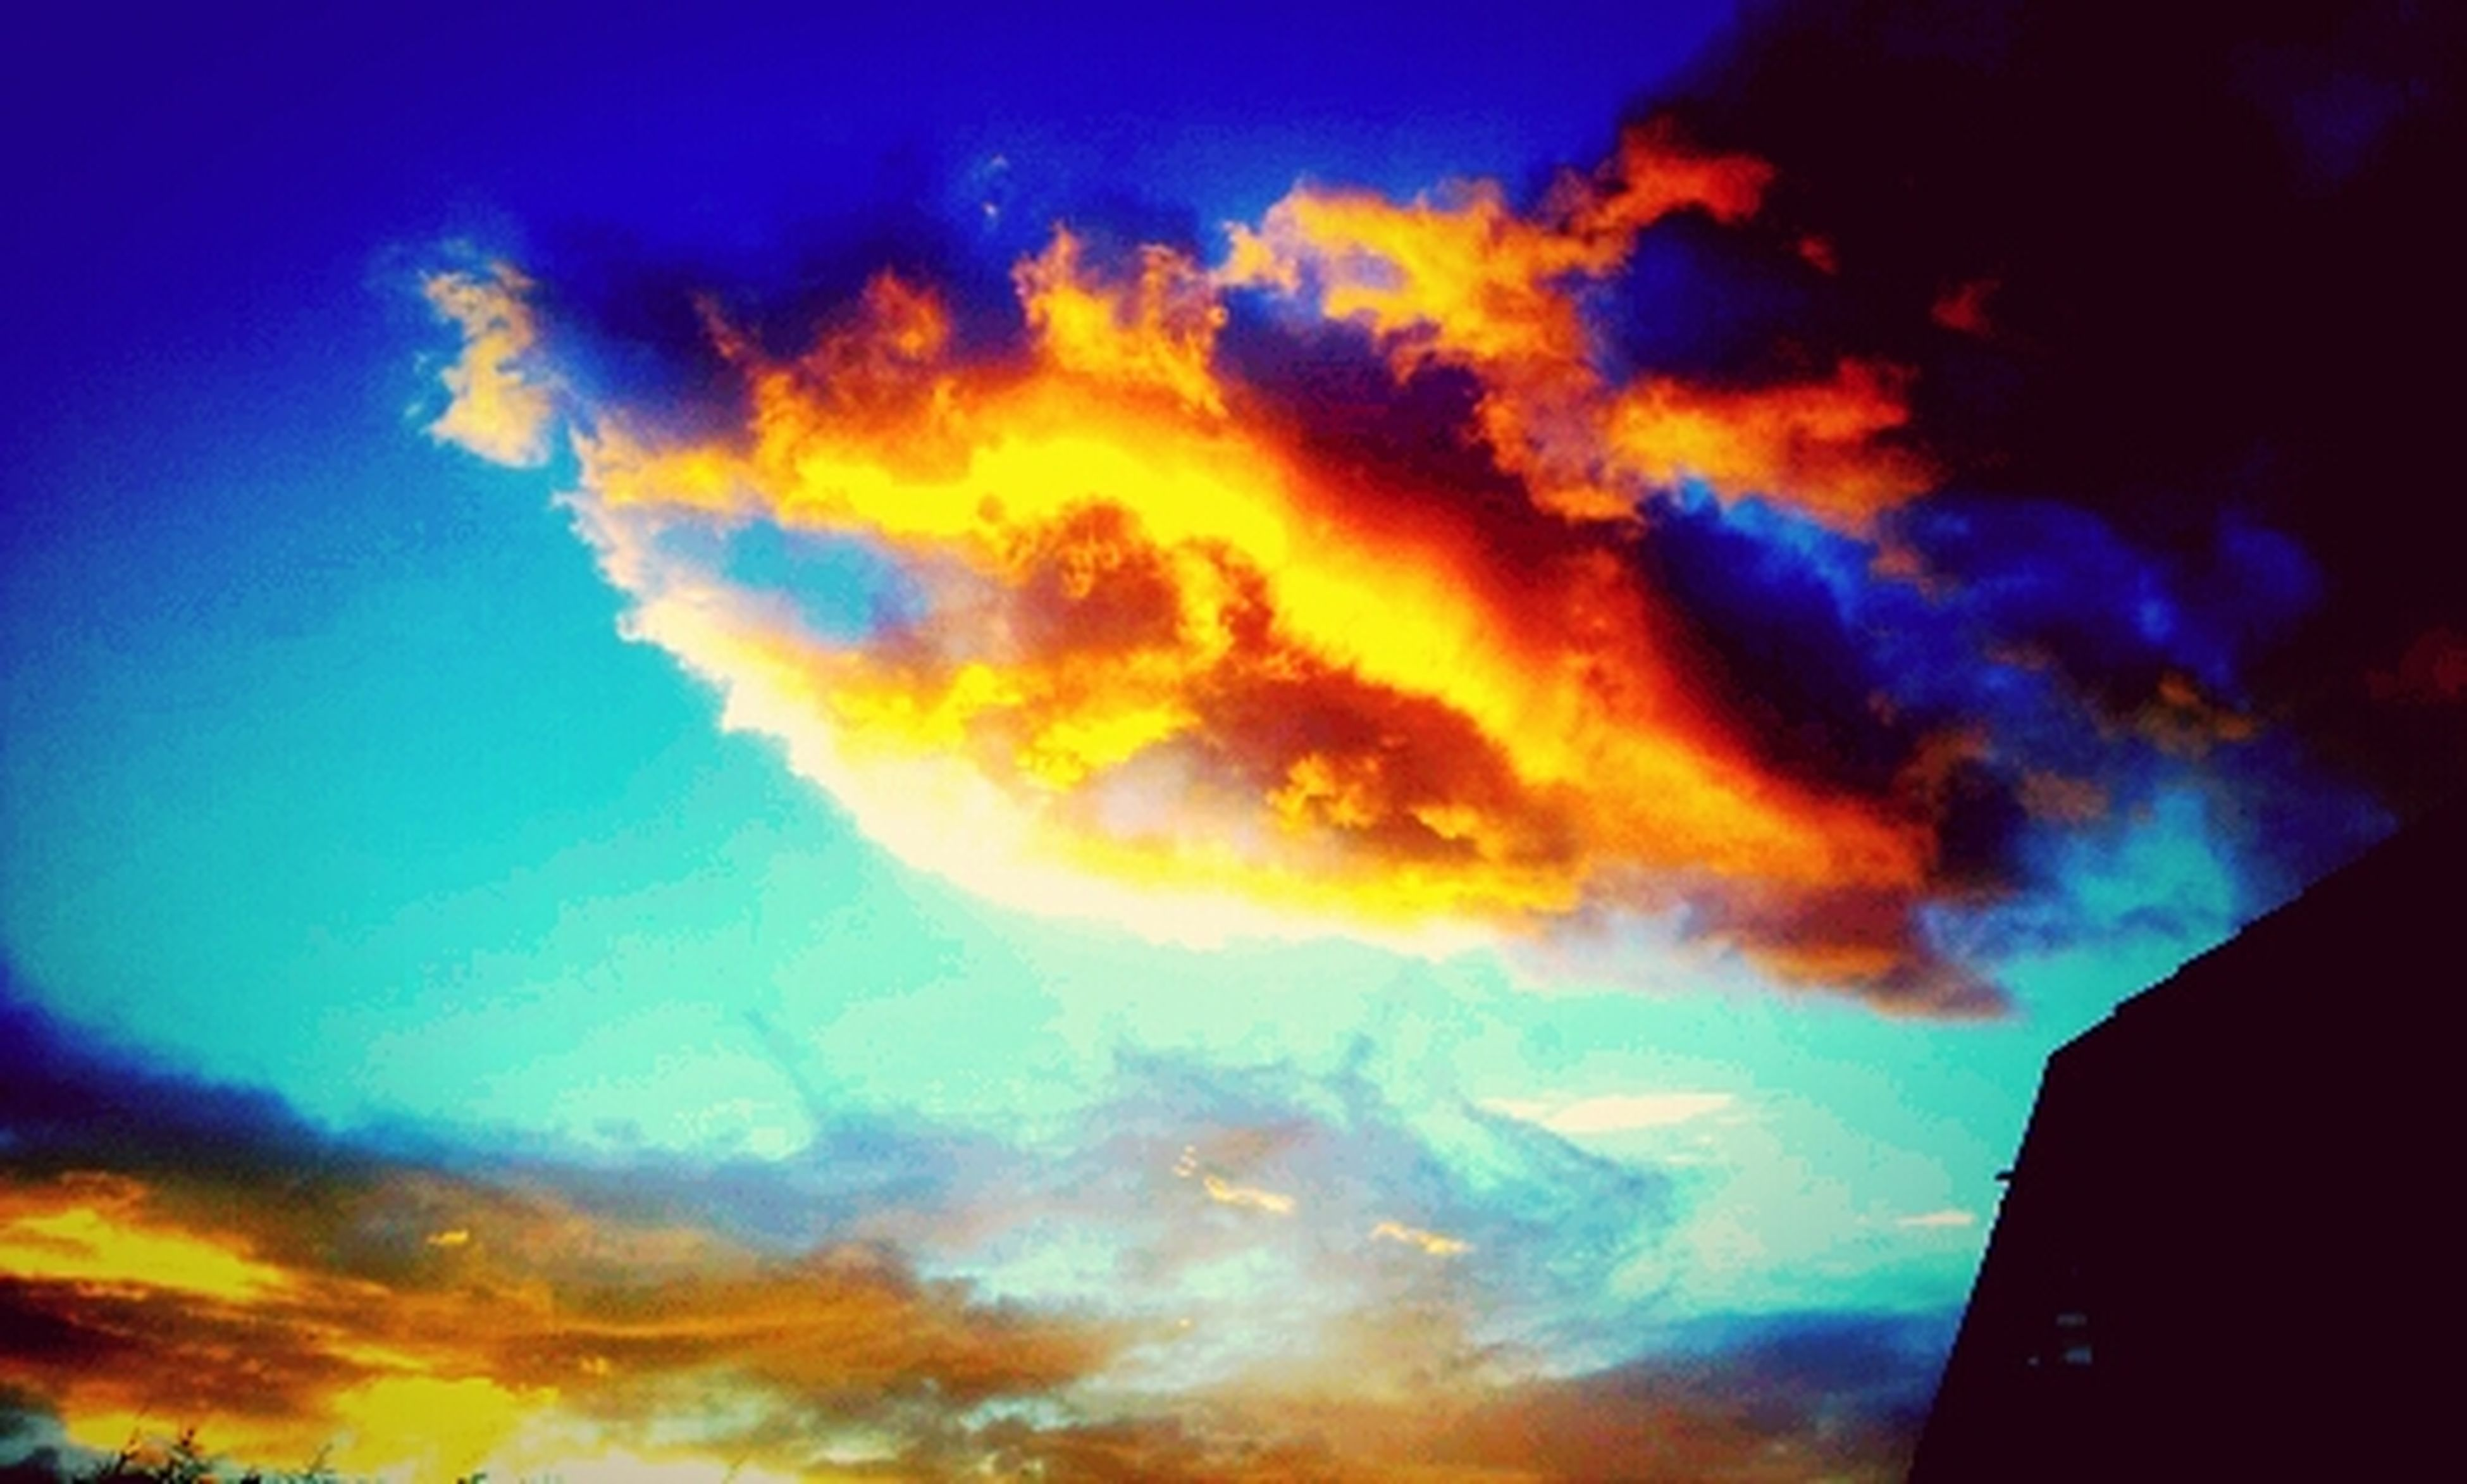 sky, low angle view, cloud - sky, cloudy, sunset, cloud, dramatic sky, beauty in nature, blue, nature, scenics, silhouette, cloudscape, weather, dusk, outdoors, tranquility, atmospheric mood, moody sky, building exterior